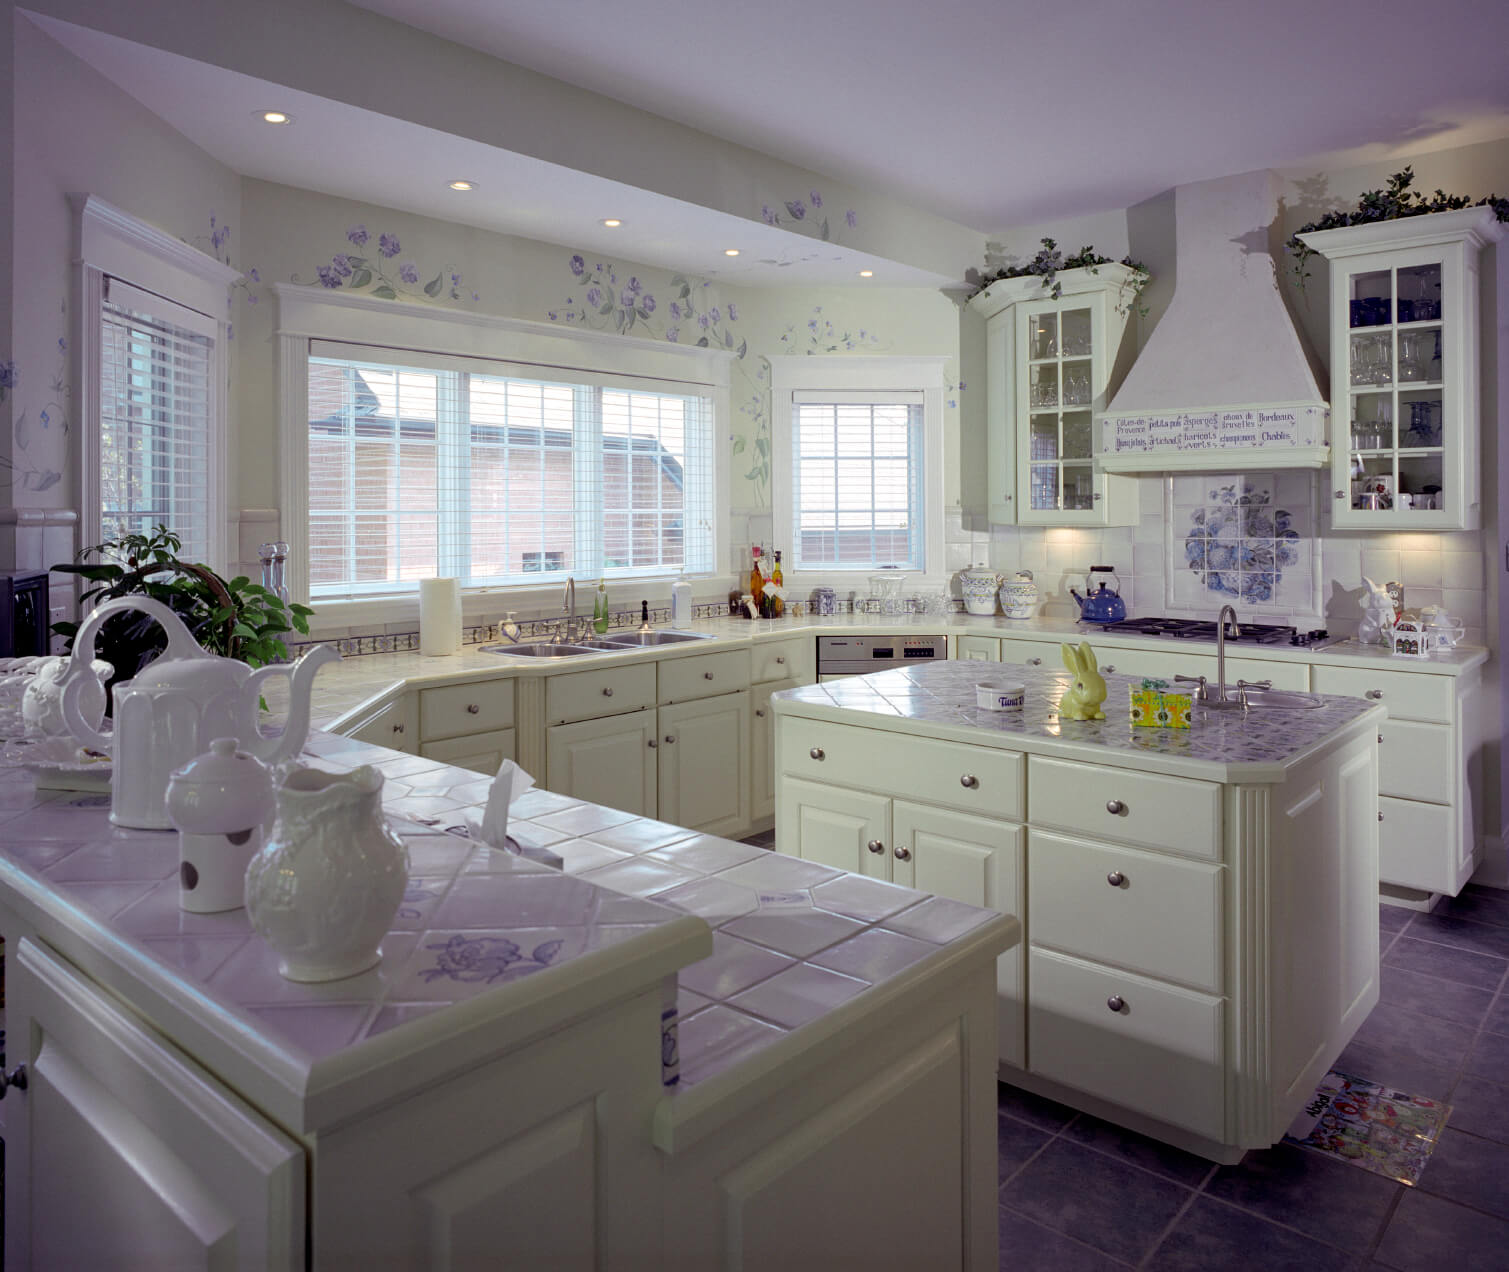 white kitchen designs pictures white kitchen countertops This white kitchen is enlivened by a smattering of purple throughout purple tile flooring